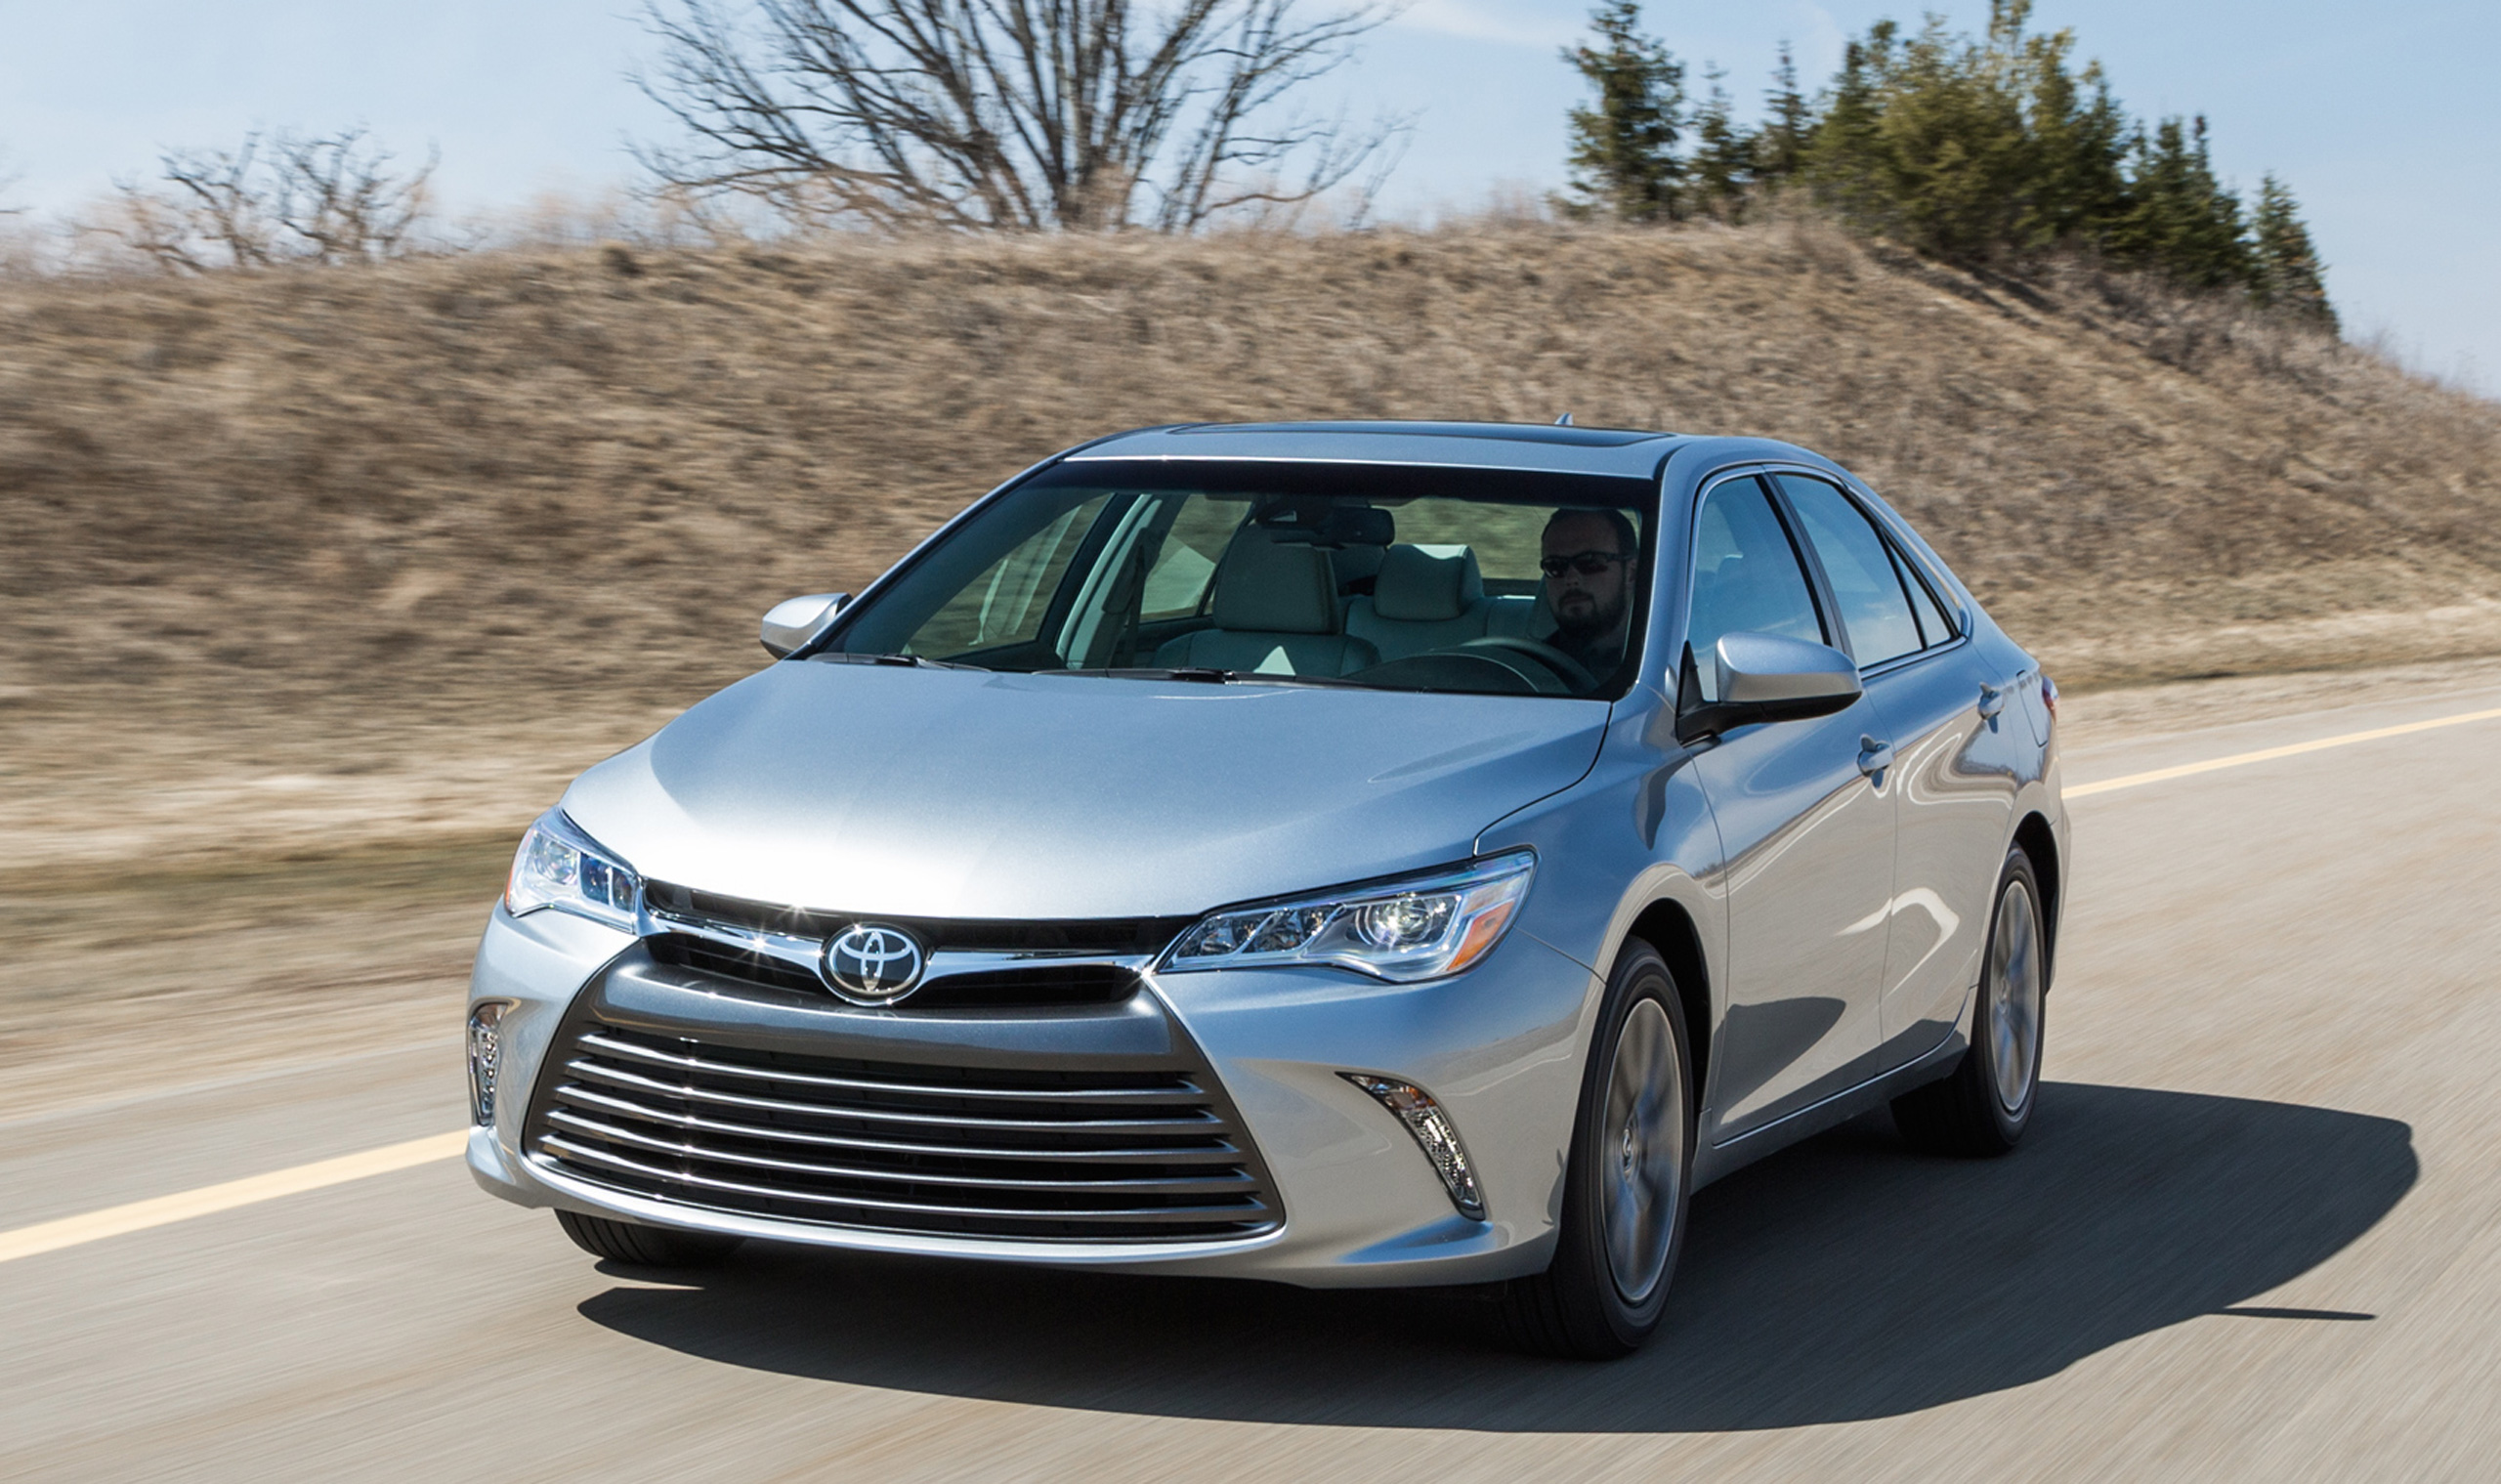 all new camry paultan toyota yaris trd sportivo price in india 2015  major facelift unveiled nyc image